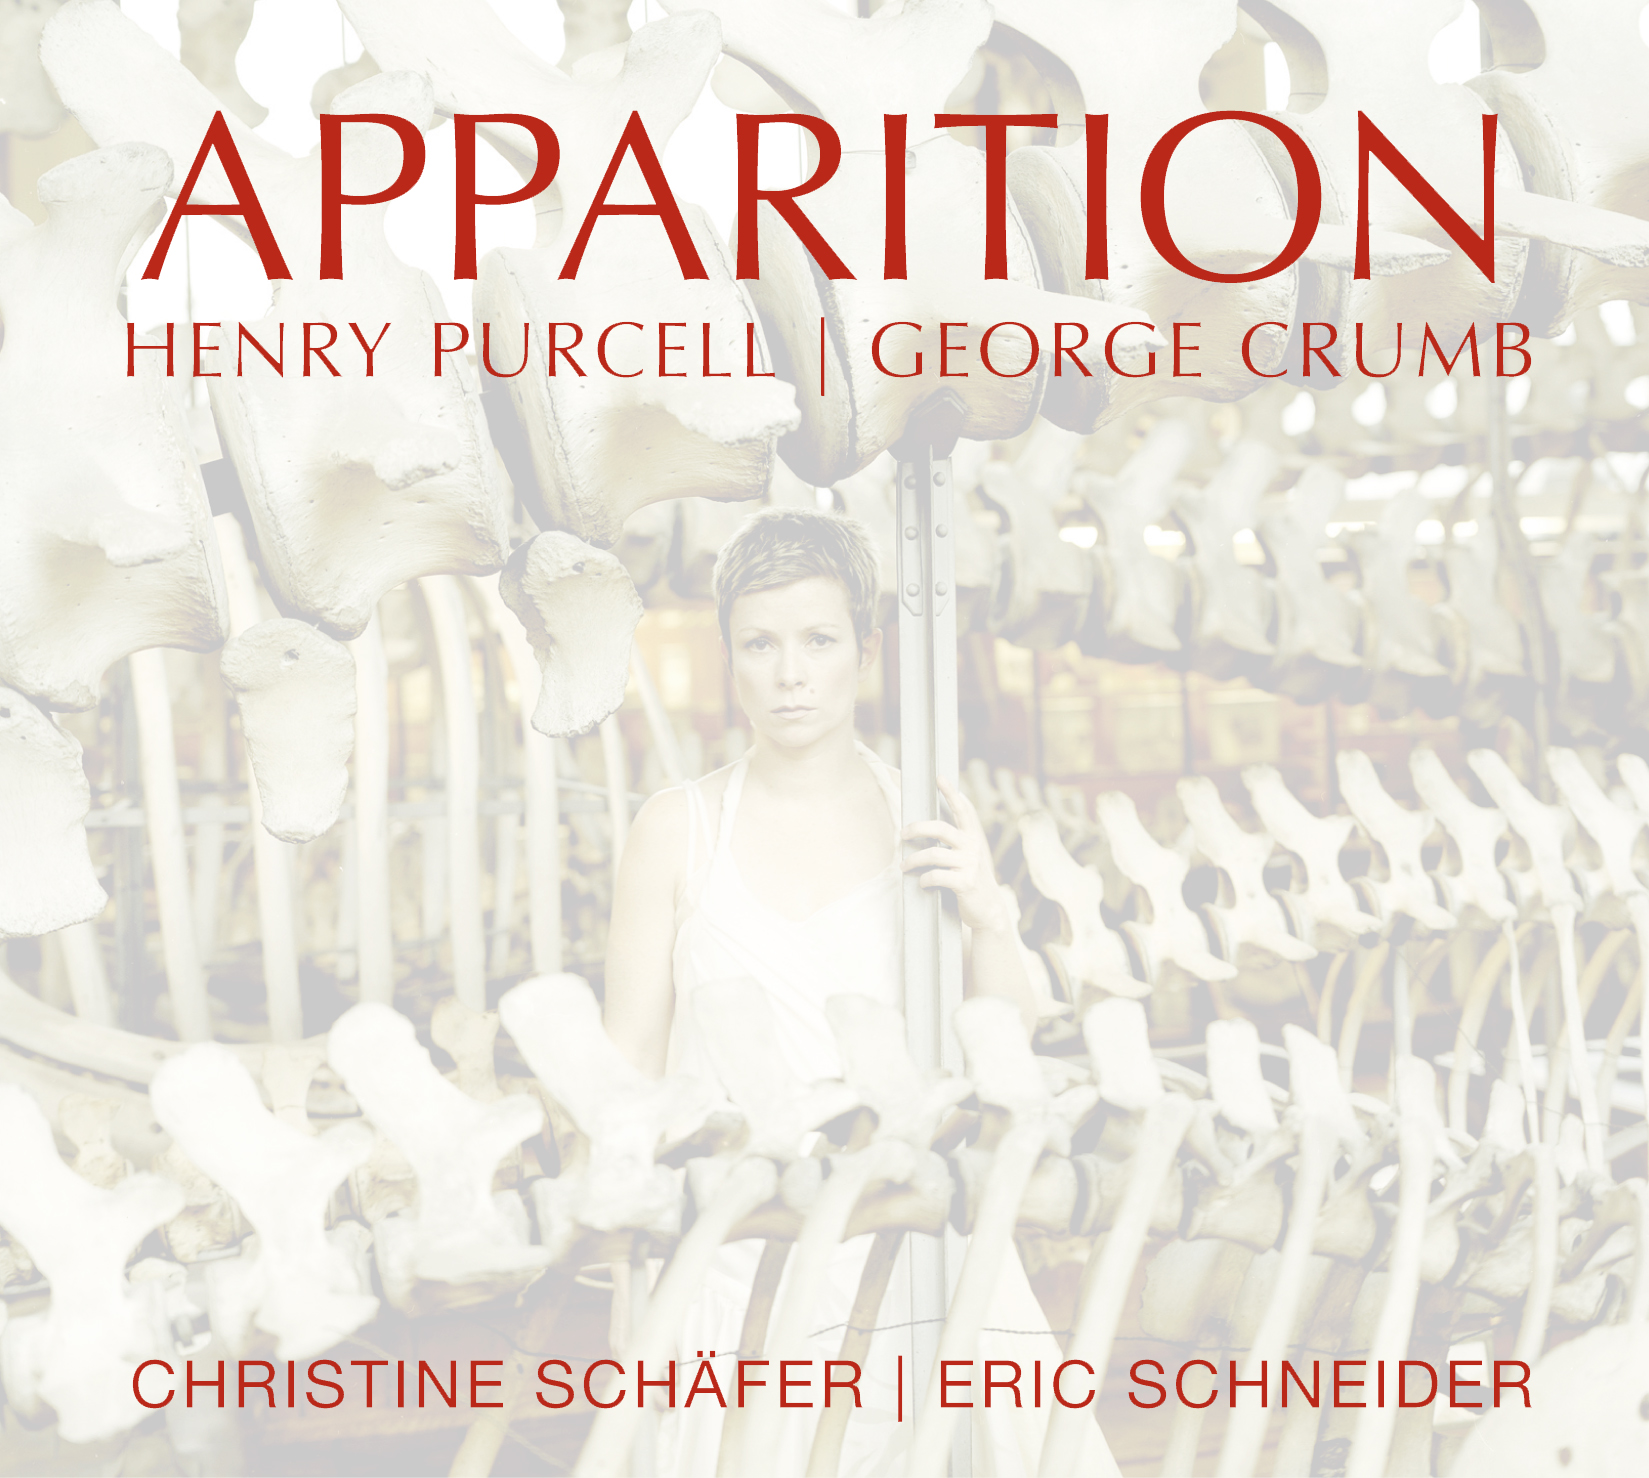 Apparition: Henry Purcell / George Crumb